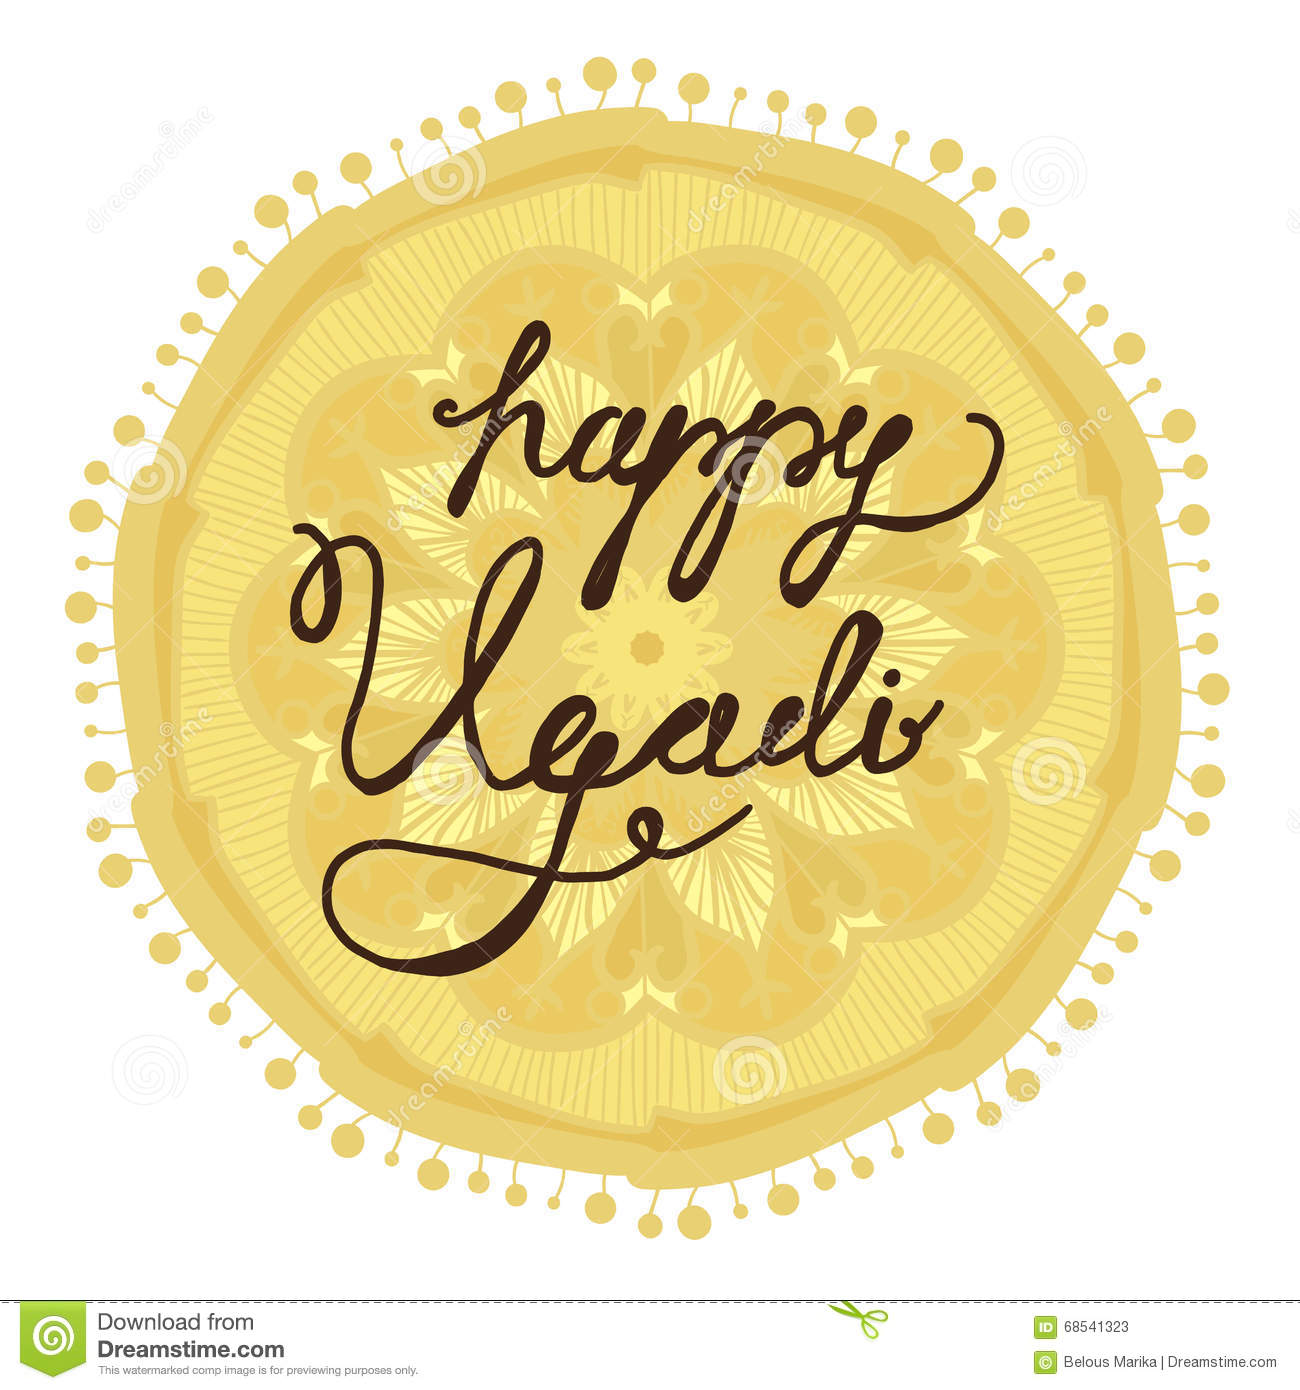 Happy ugadi banner stock illustration illustration of blessings happy ugadi banner blessings background kristyandbryce Image collections